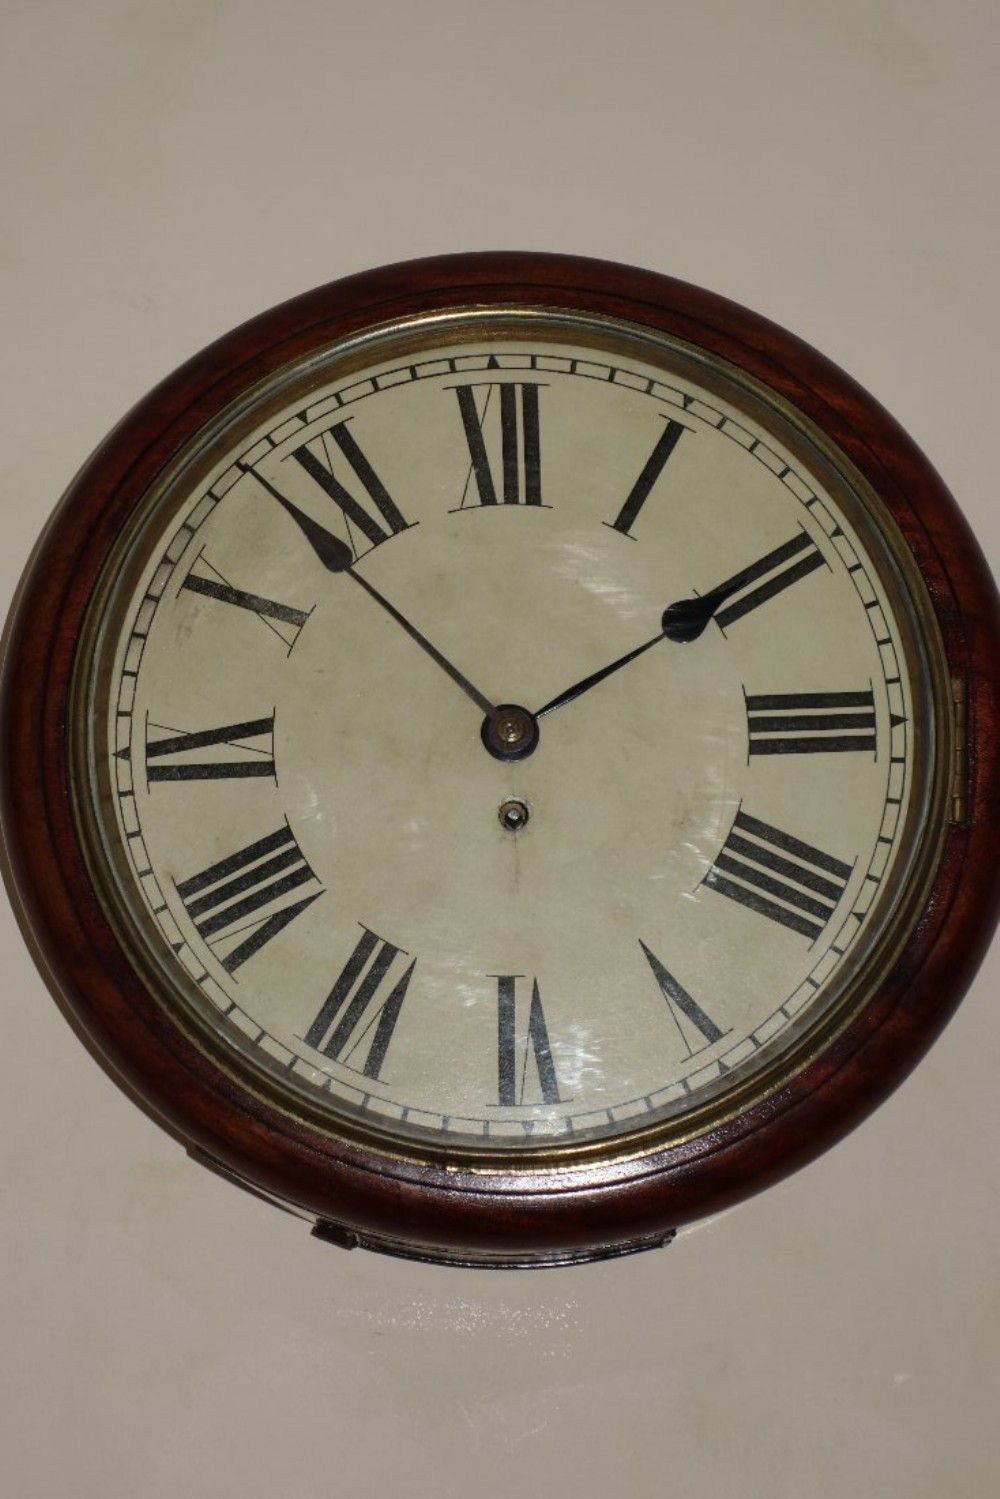 11 Inch Chapter Ring Late 19th Century Mahogany Cased Fusee Office School Station Wall Clock Clock Wall Clock Wall